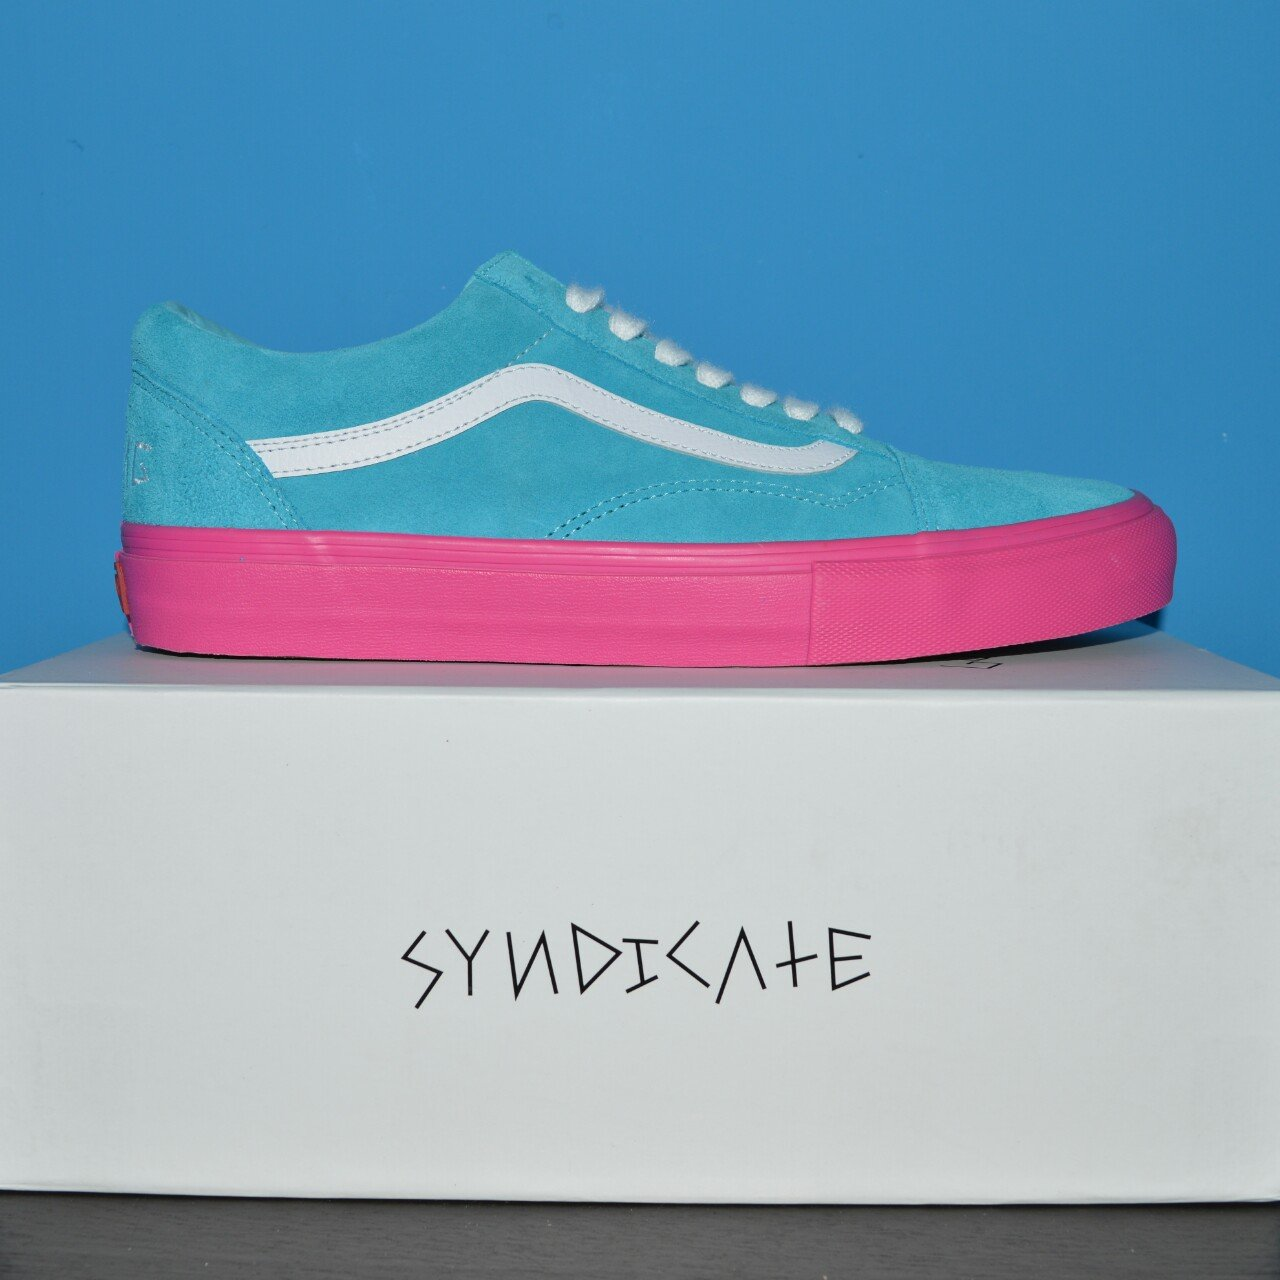 c9daf0aedb60 Golf Wang 2nd edition Syndicates. Blue Pink soles. Shoes up. - Depop